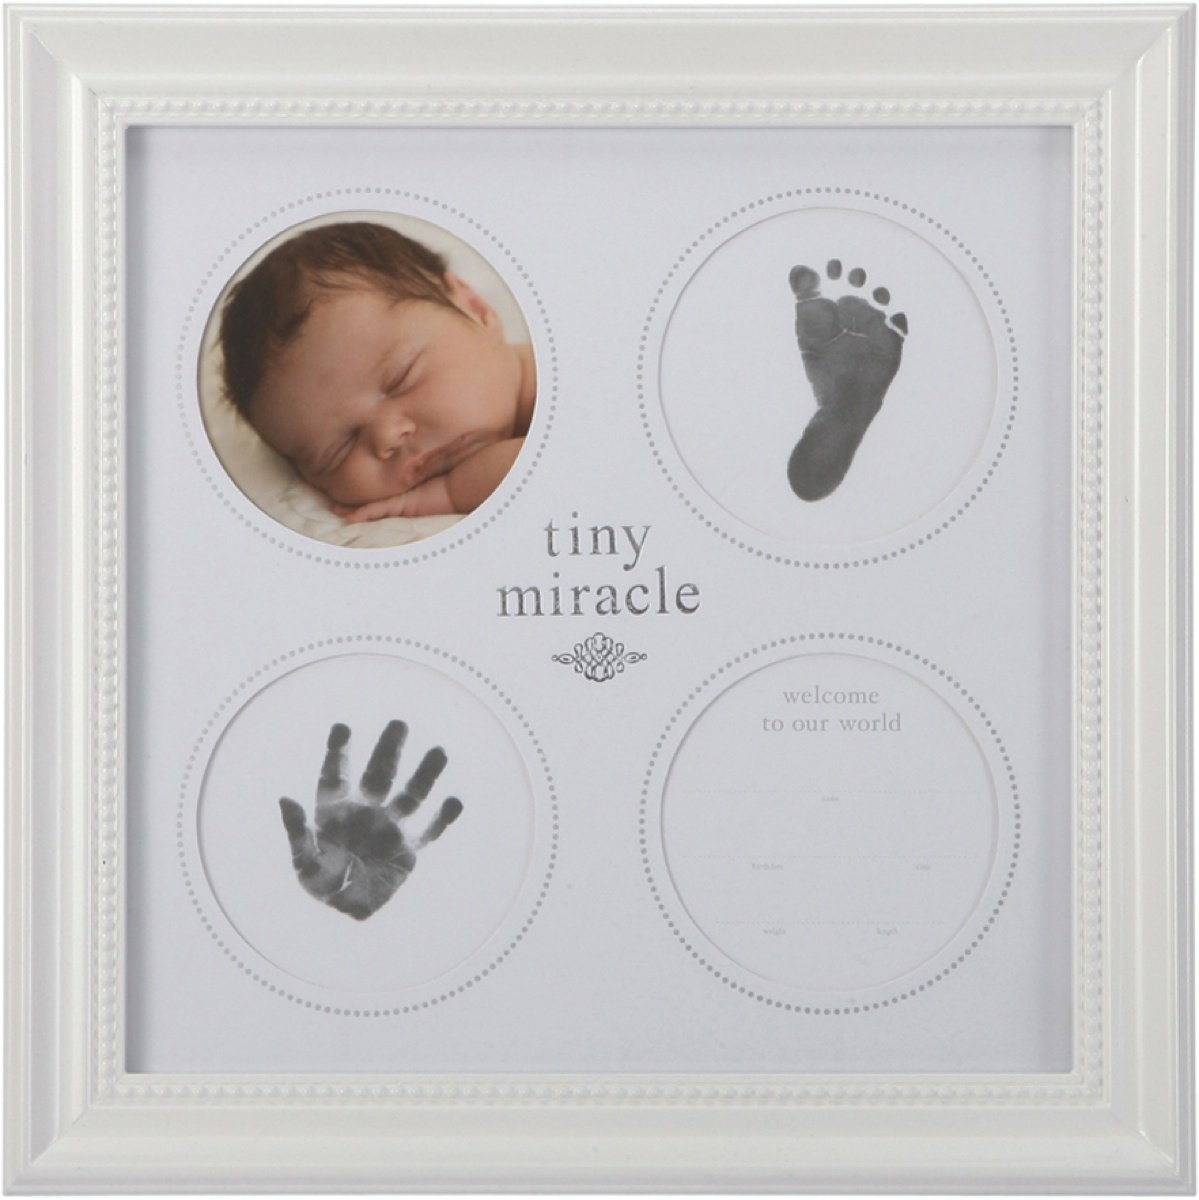 CRG Keepsake Frame, Tiny Miracle Cr Gibson C.R. Gibson BHP13-10280 Other Gift Items - General